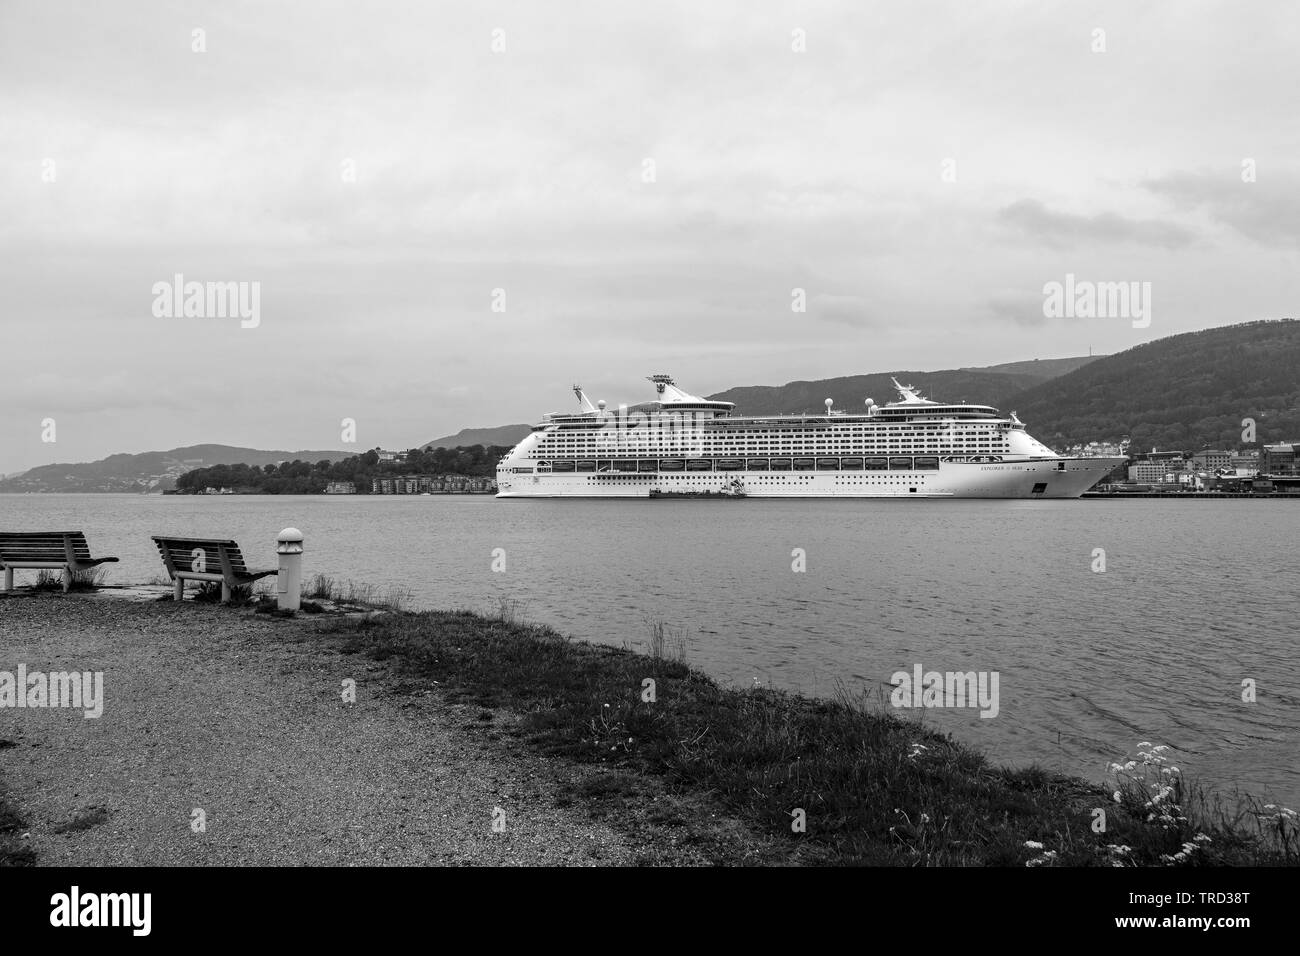 Cruise ship Explorer Of The Seas at Jekteviksterminalen terminal in the port of Bergen, Norway. A rainful and cloudy day. - Stock Image